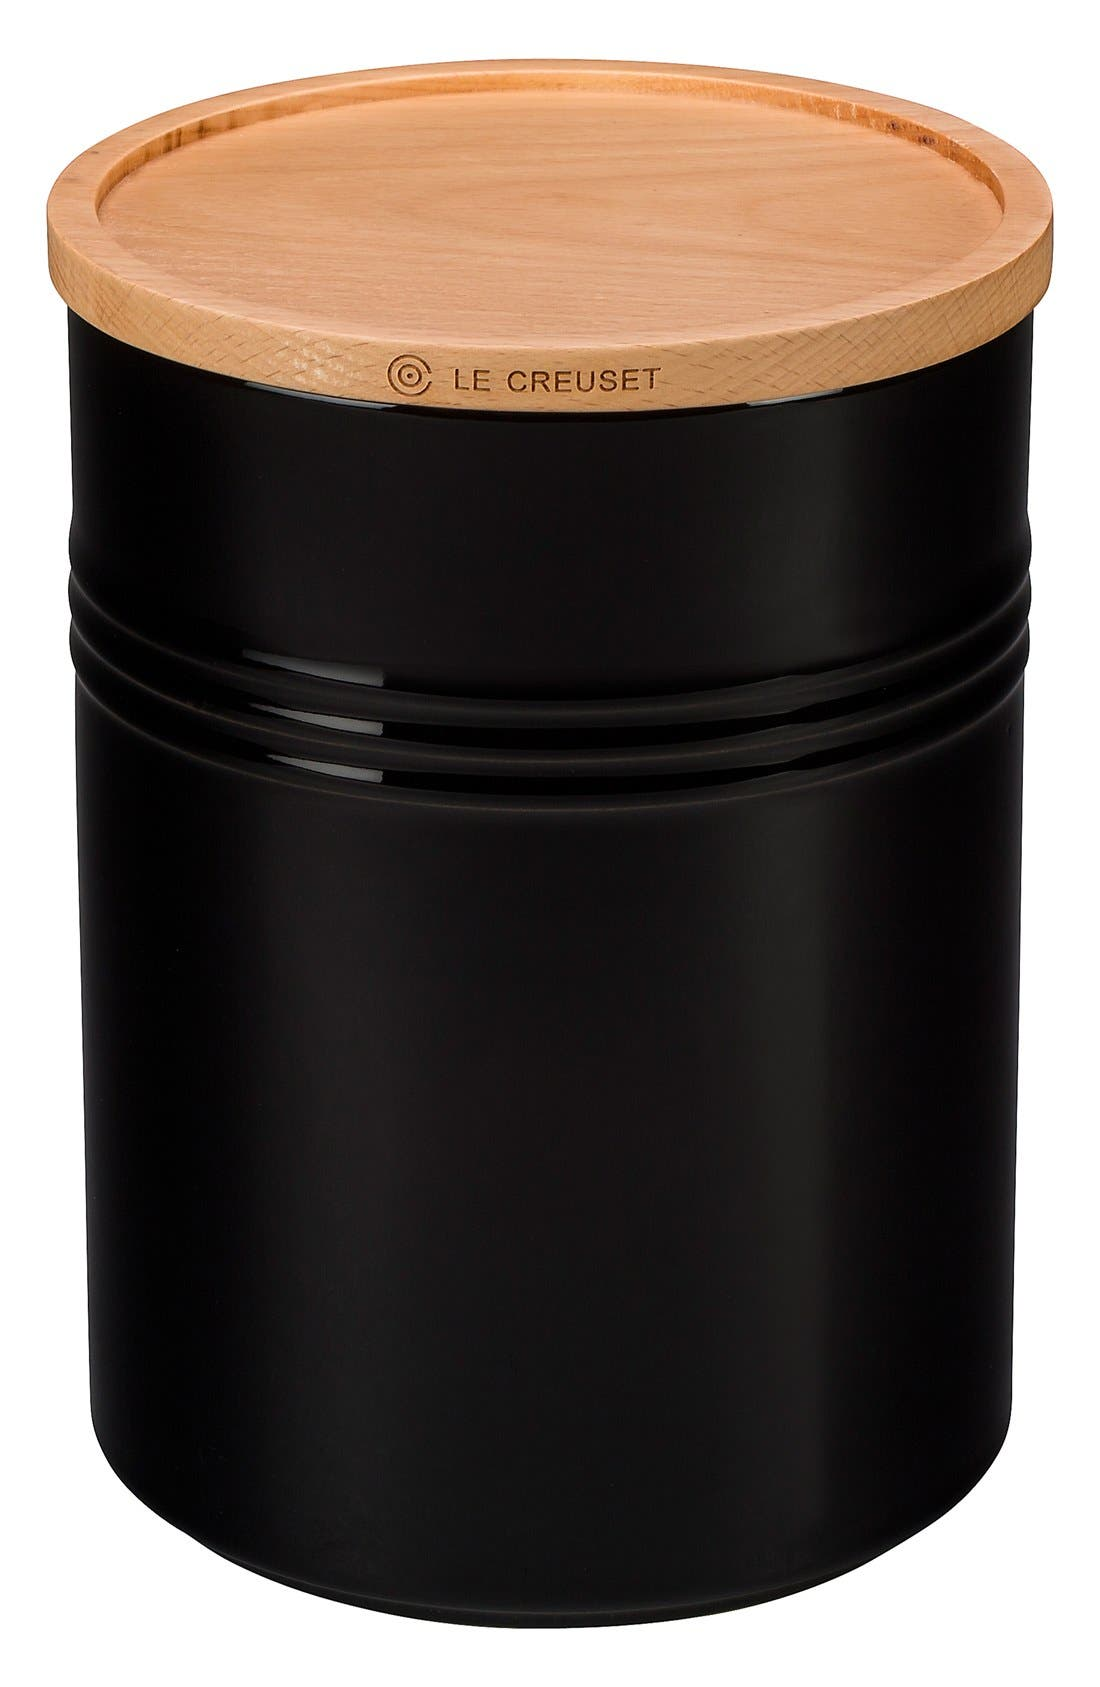 Glazed 22 Ounce Stoneware Storage Canister with Wooden Lid,                             Main thumbnail 1, color,                             Black Onyx